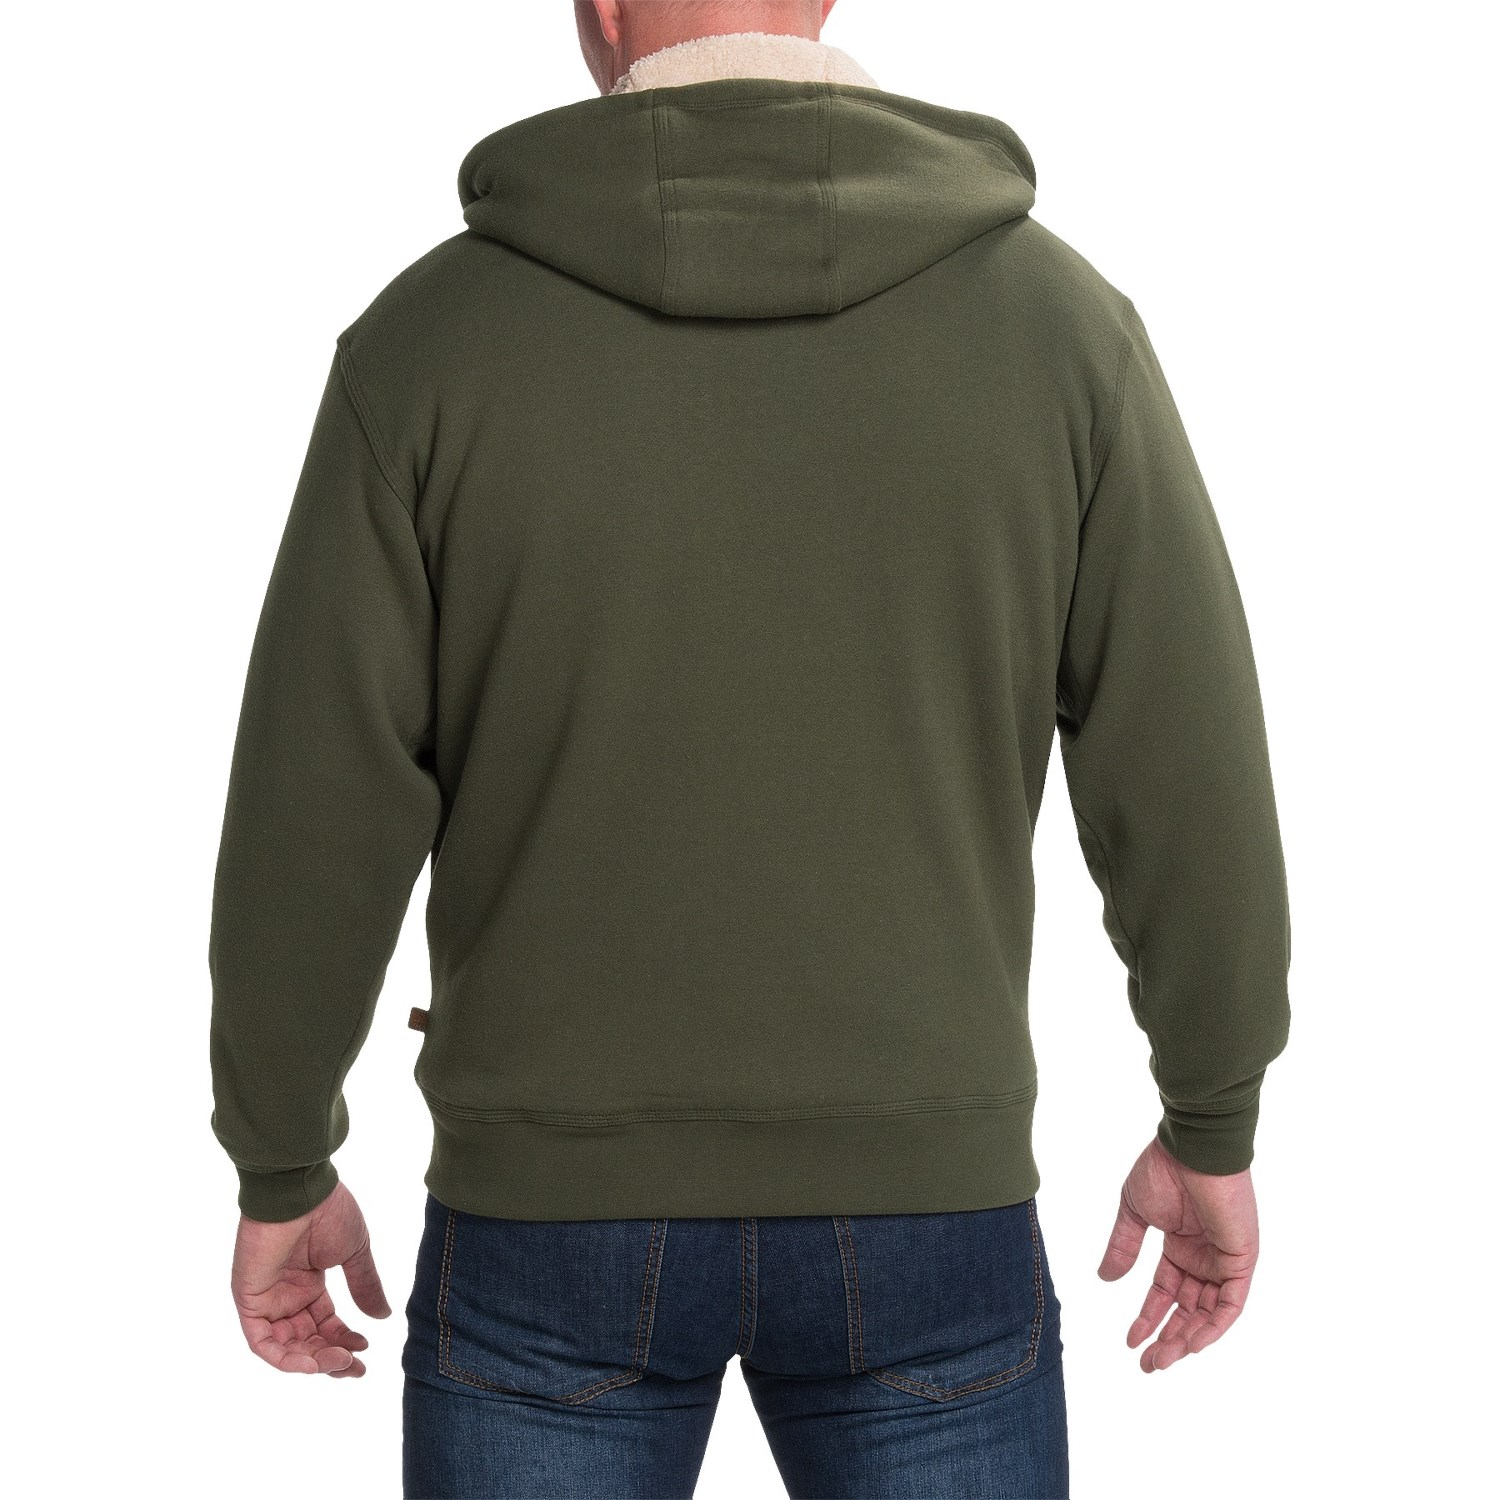 Moose Creek Carbon Creek Hoodie Jacket (For Men) - Save 53%